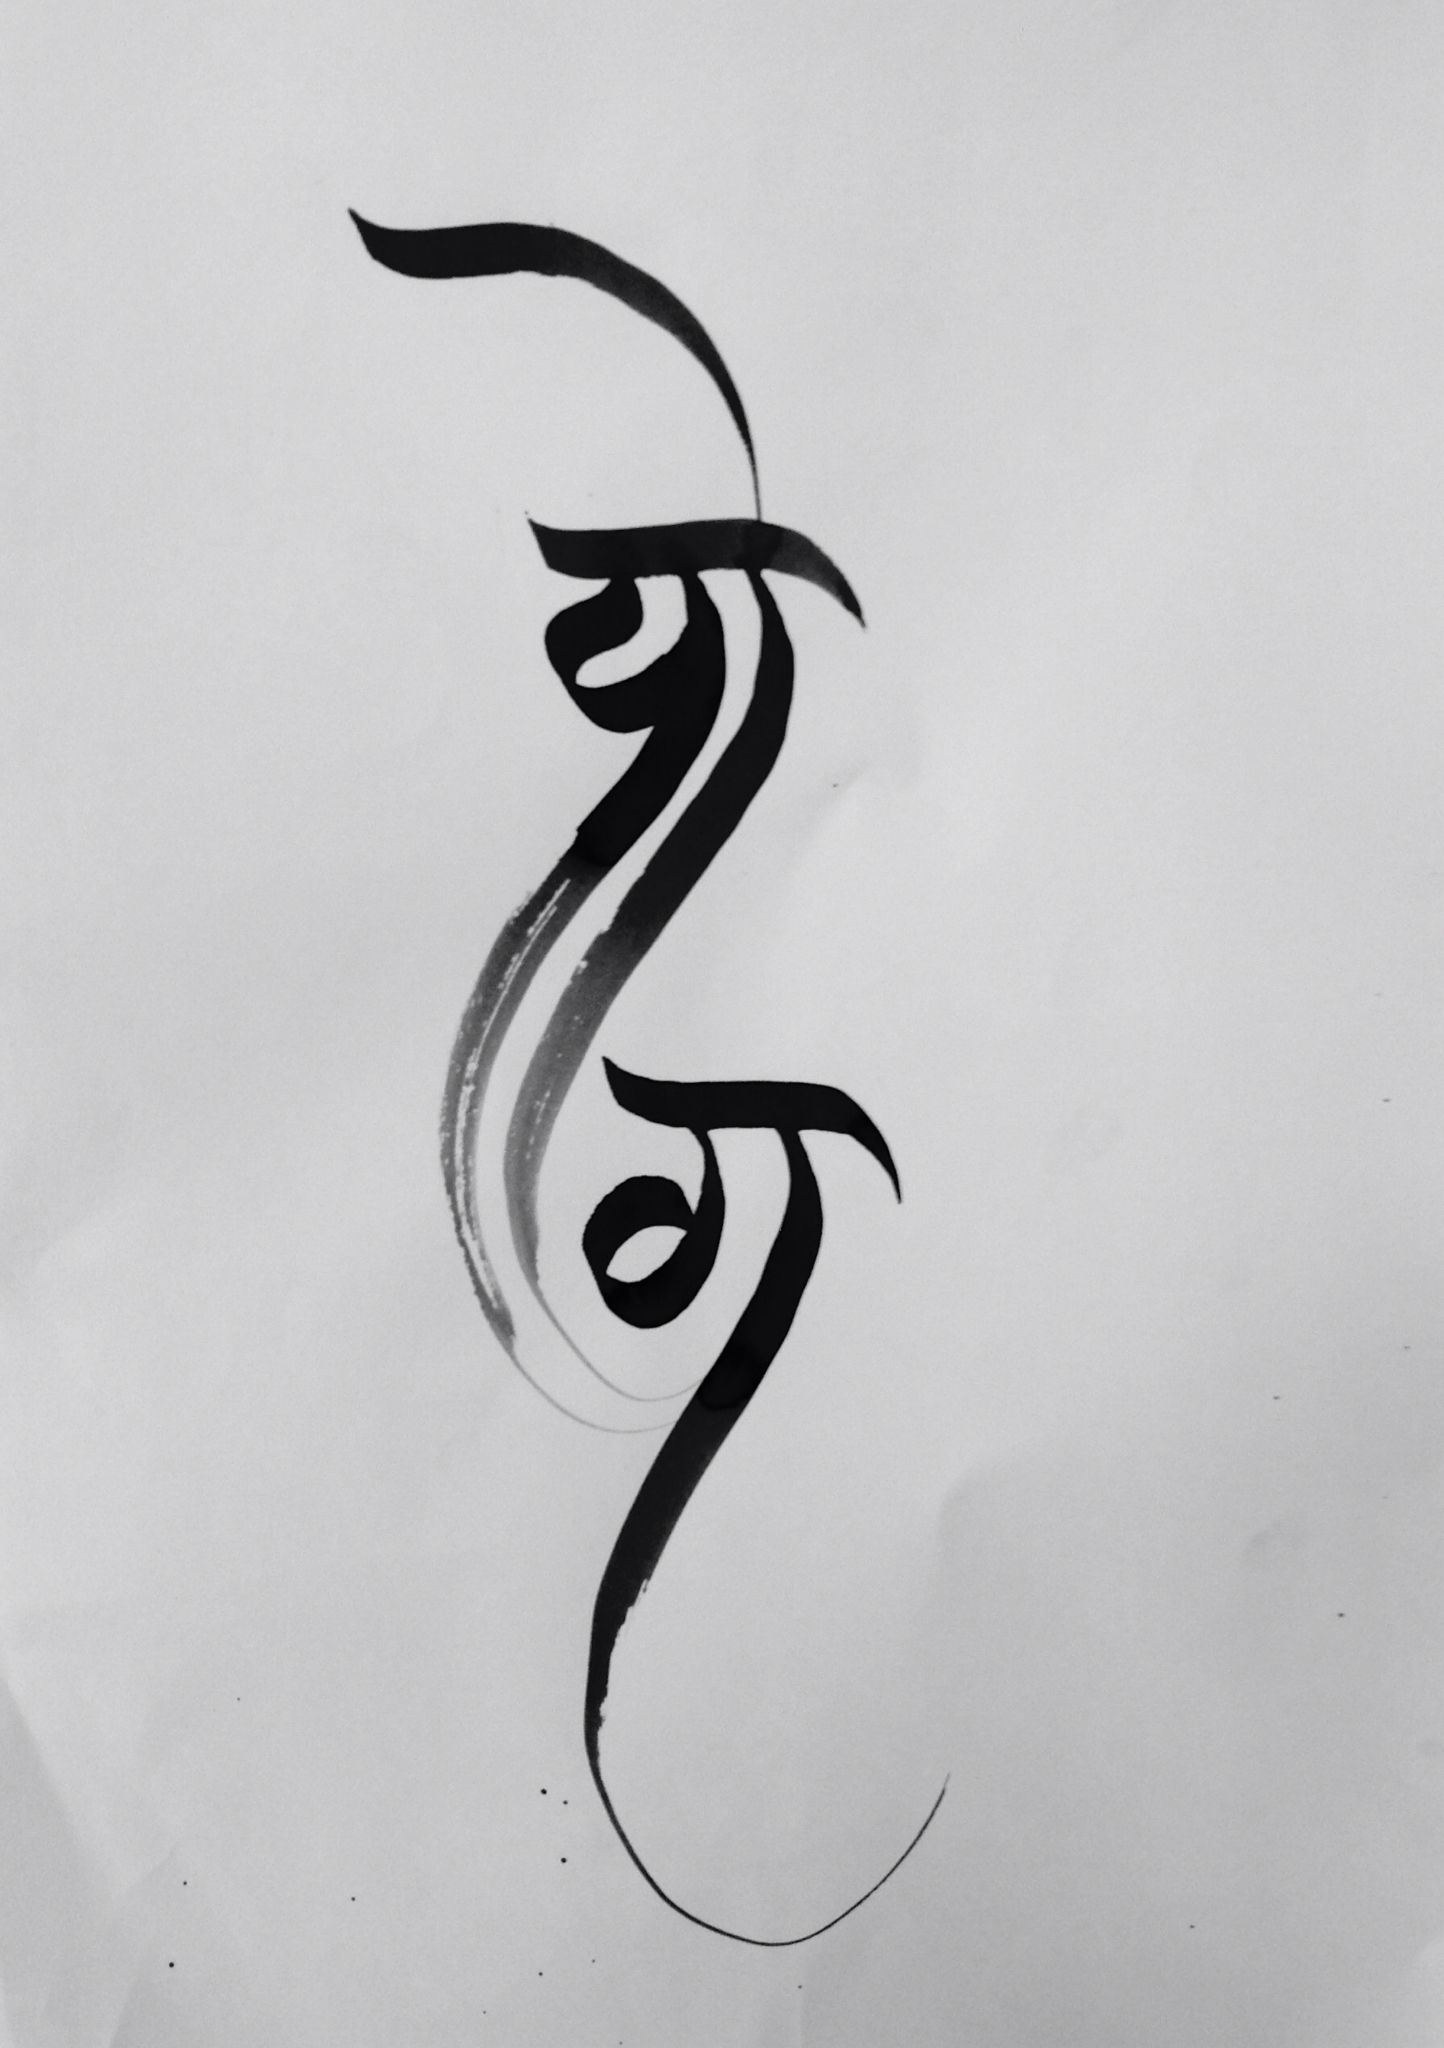 Devanagari Calligraphy Bamboo Pen And Ink On Paper Yoga